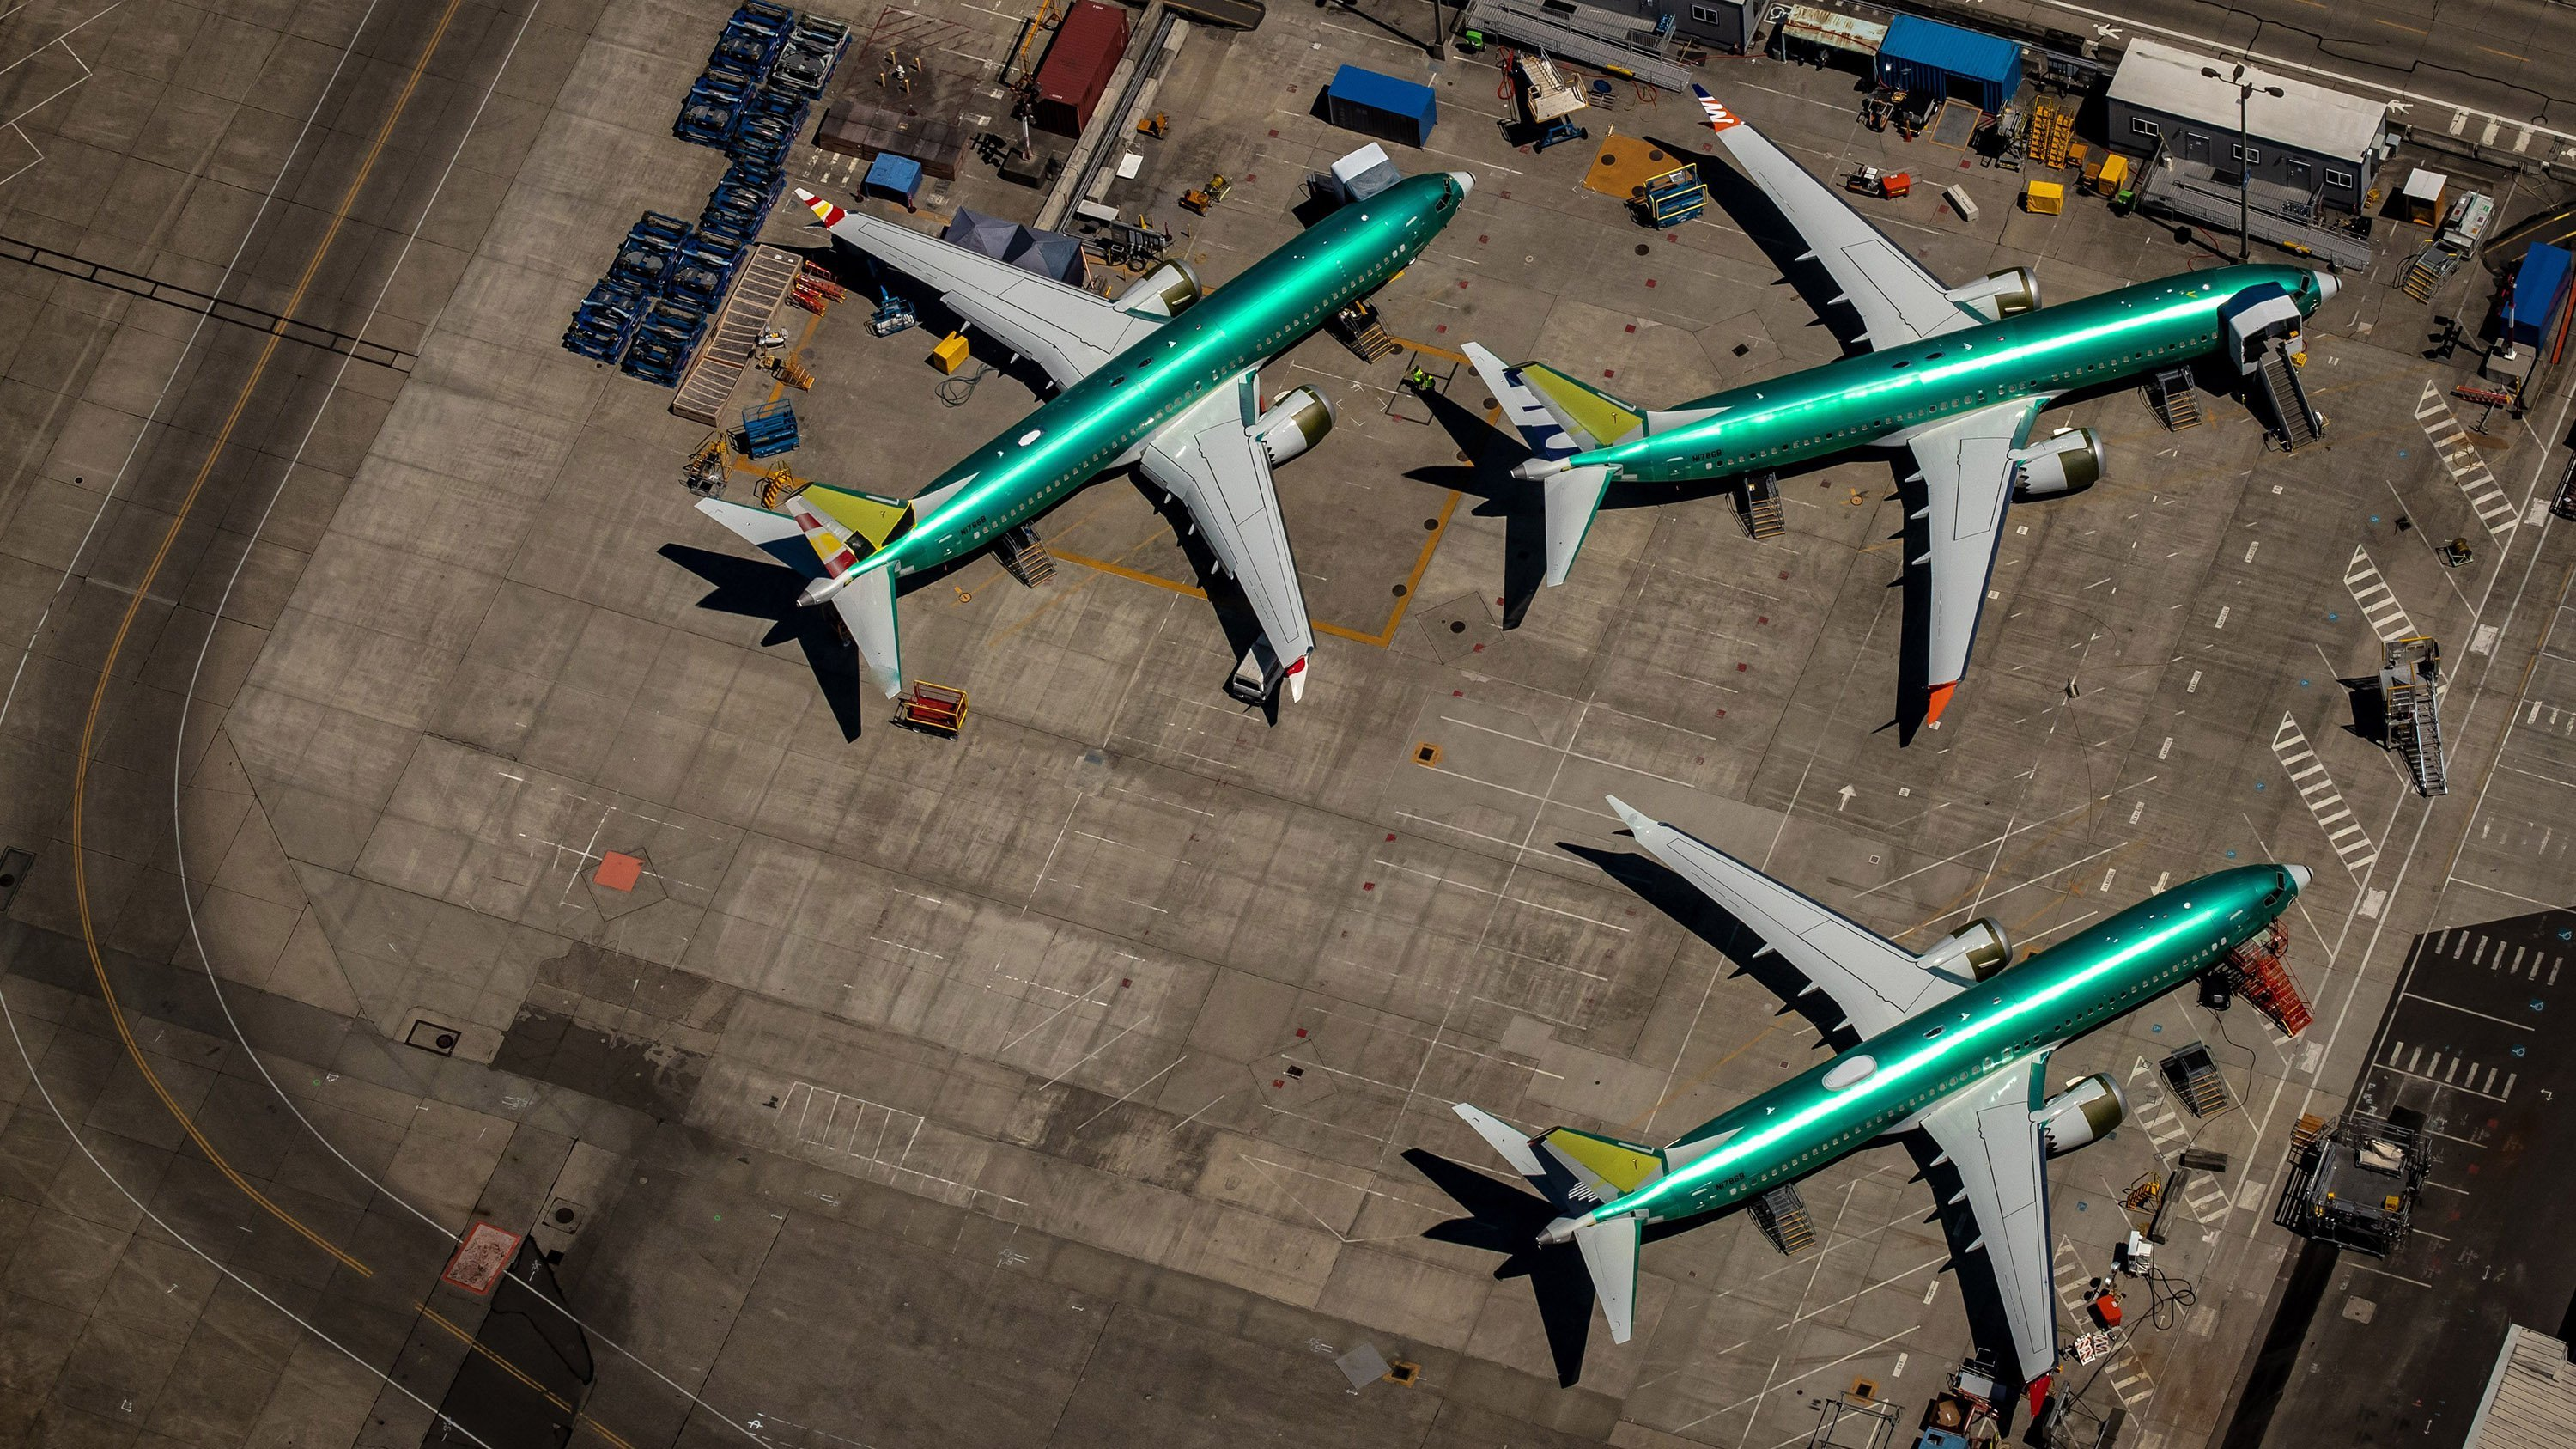 Boeing is profitable again, but the 737 Max is still a crisis